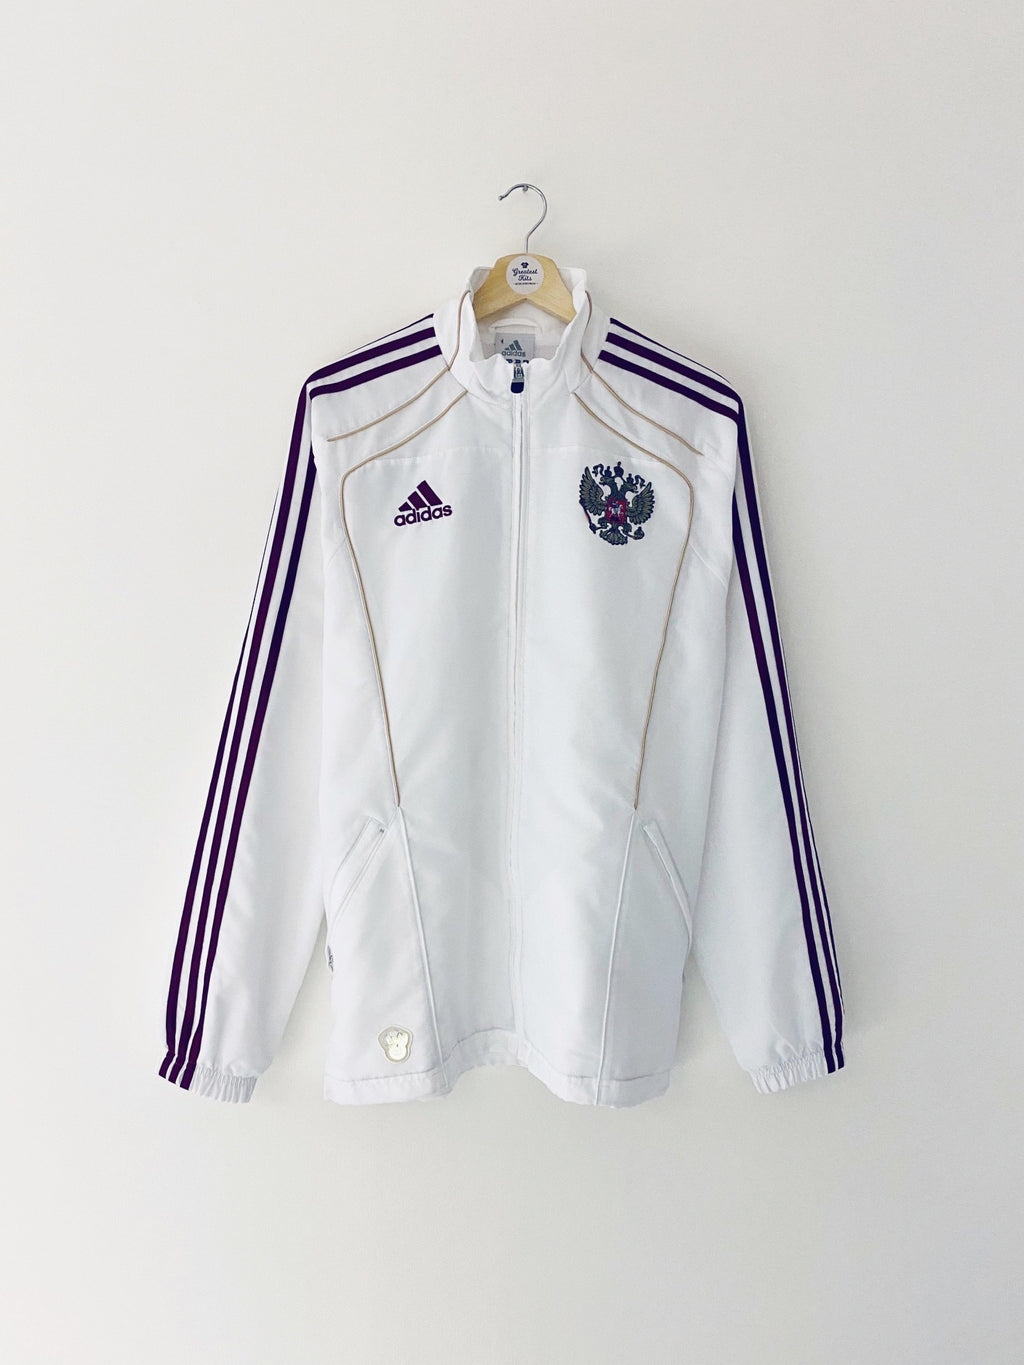 2010 Russia Woven Presentation Jacket (M) 9/10